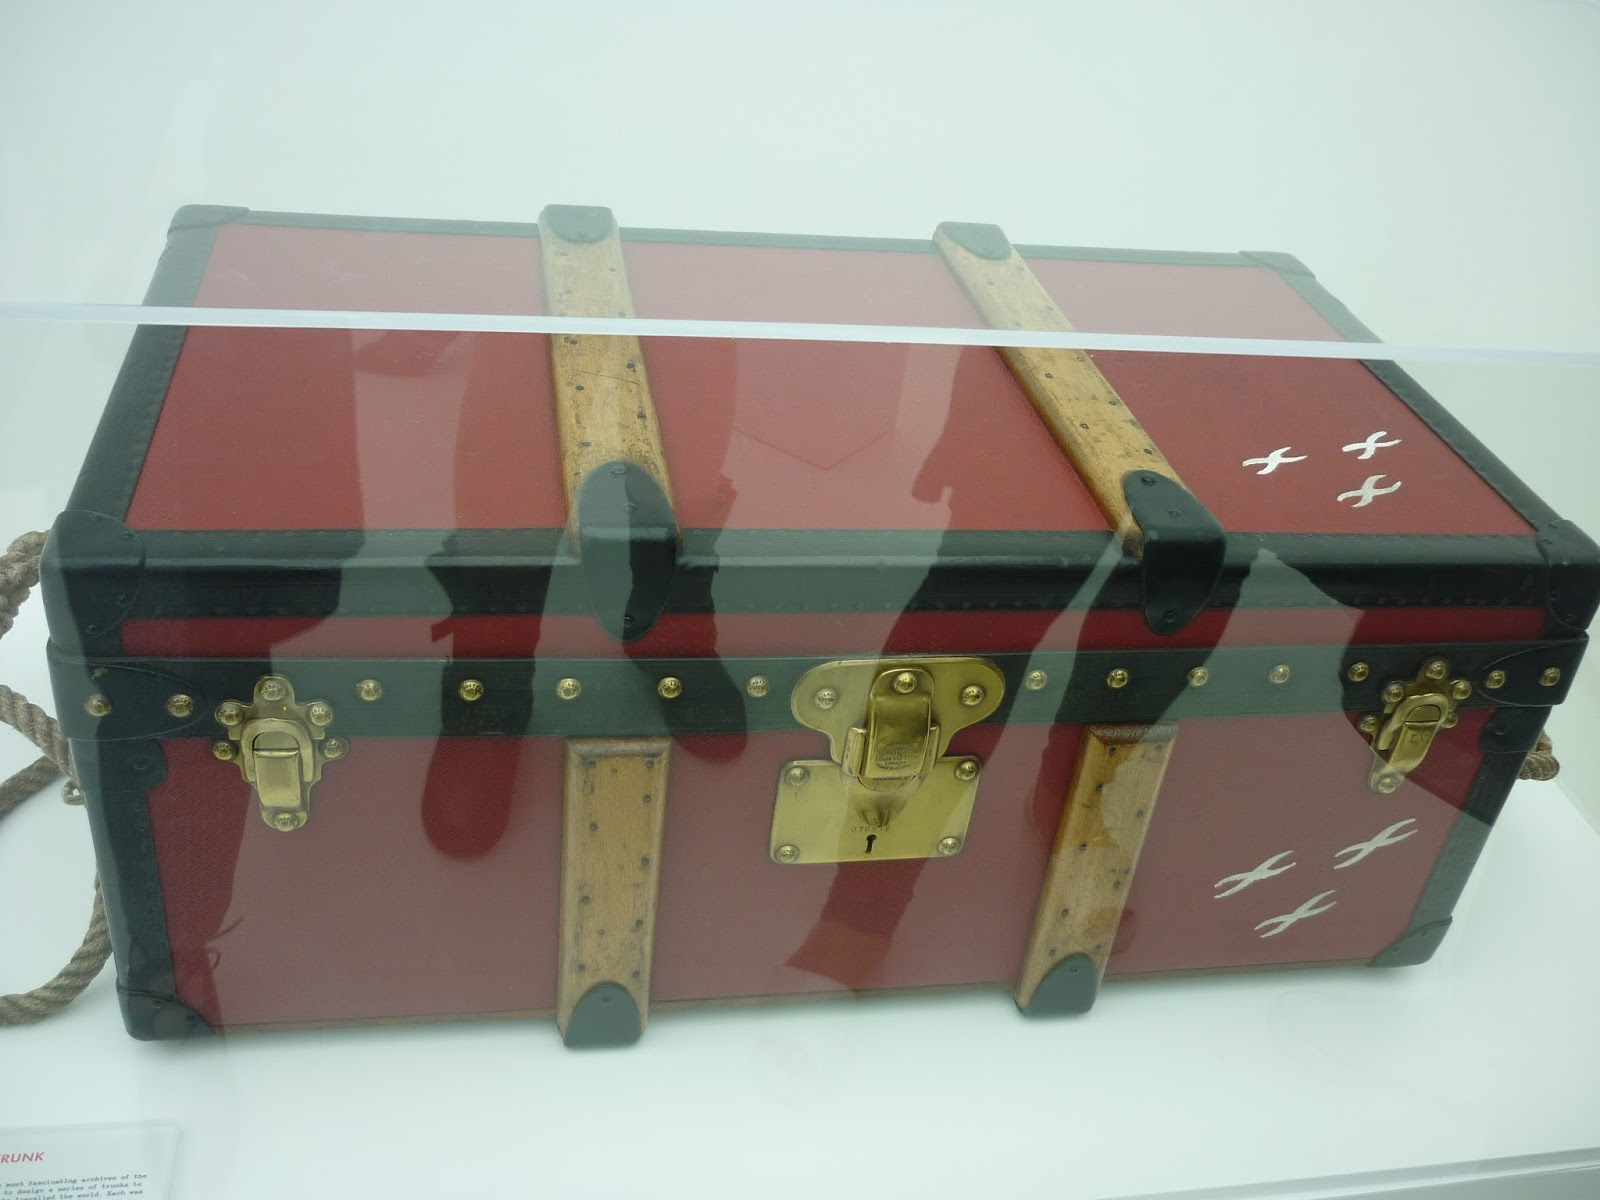 Albert Kahn's Trunk, Louis Vuitton Series 3 Exhibition | Petite Silver Vixen